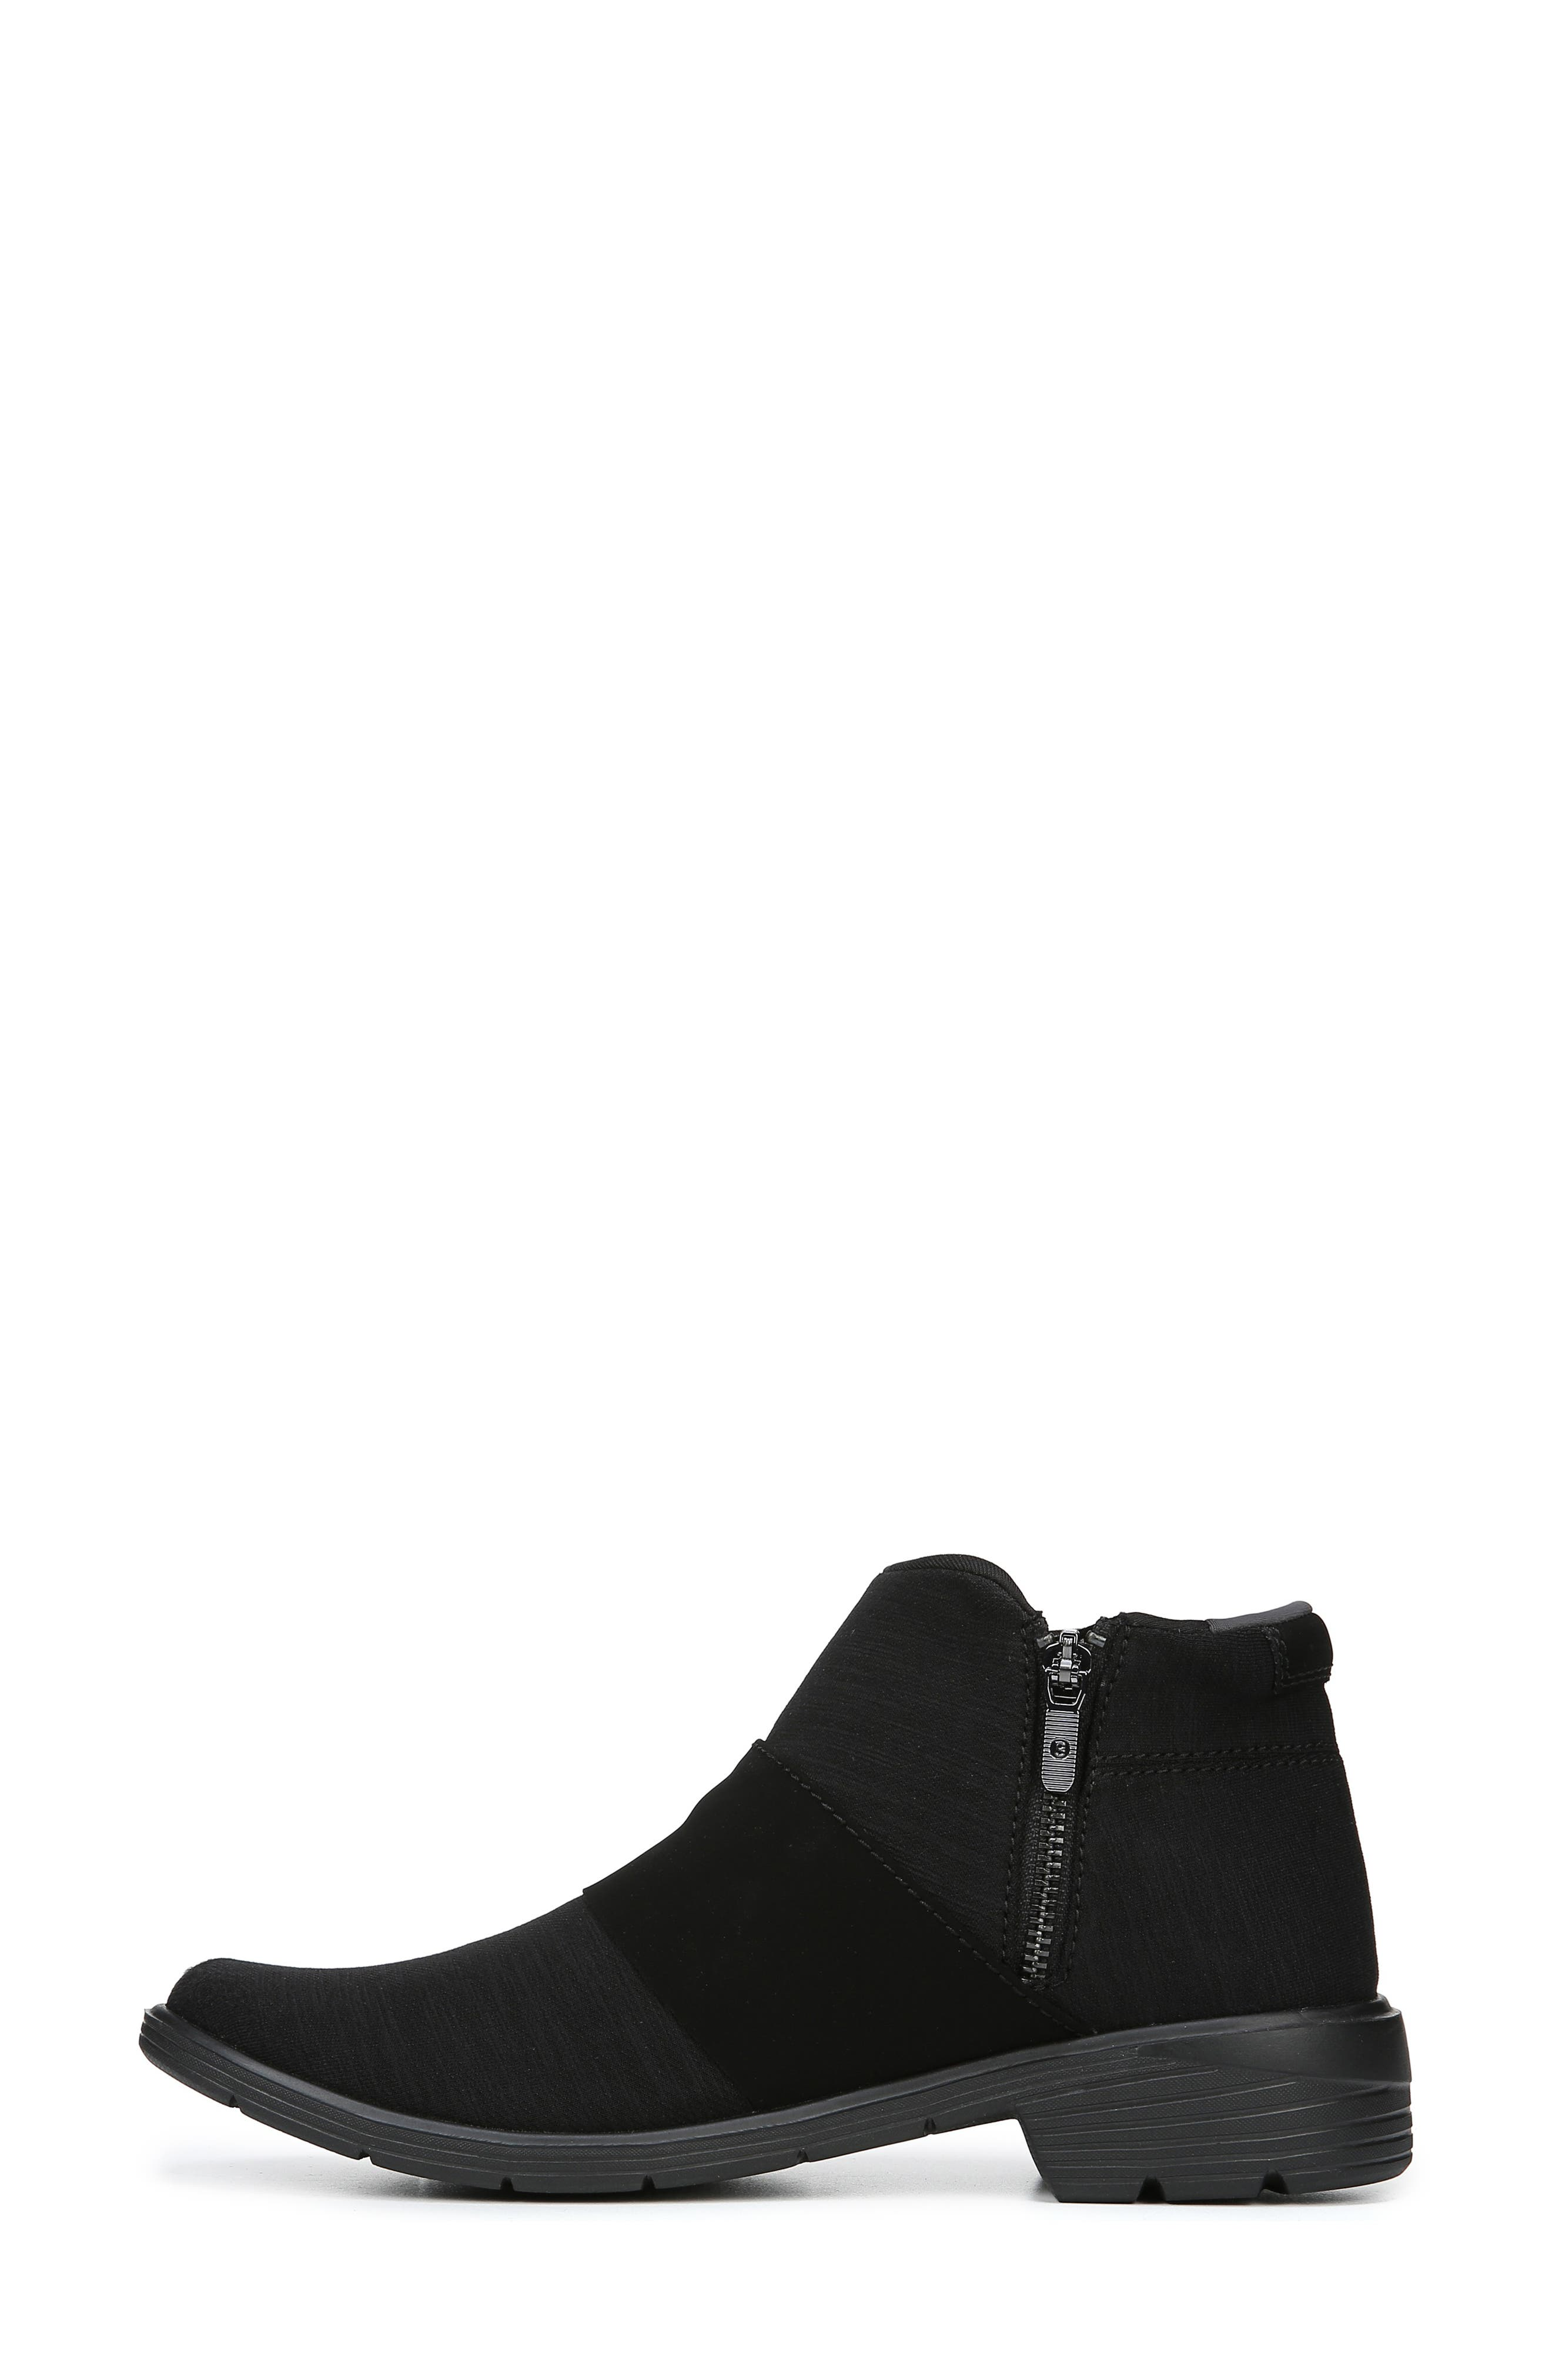 Billie Bootie,                             Alternate thumbnail 8, color,                             BLACK THICK HEATHER FABRIC